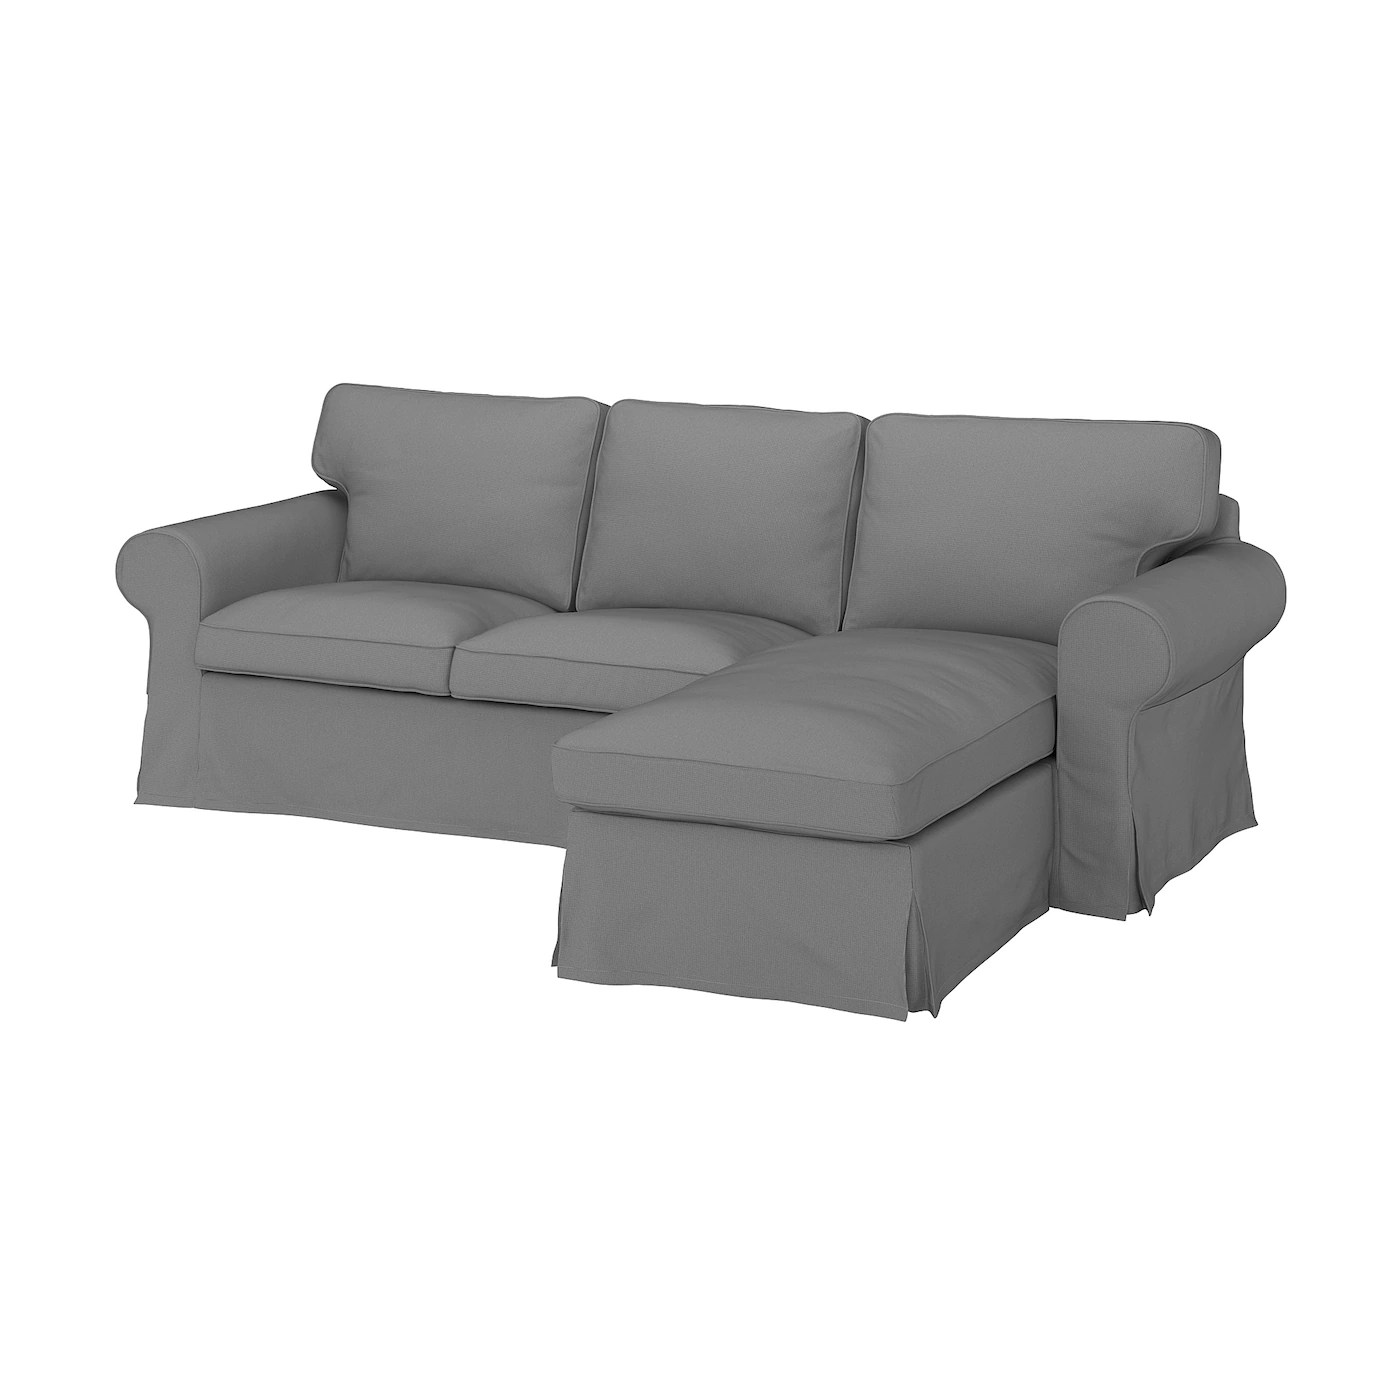 Ektorp 3 Seat Sofa With Chaise Longue Remmarn Light Grey Ikea